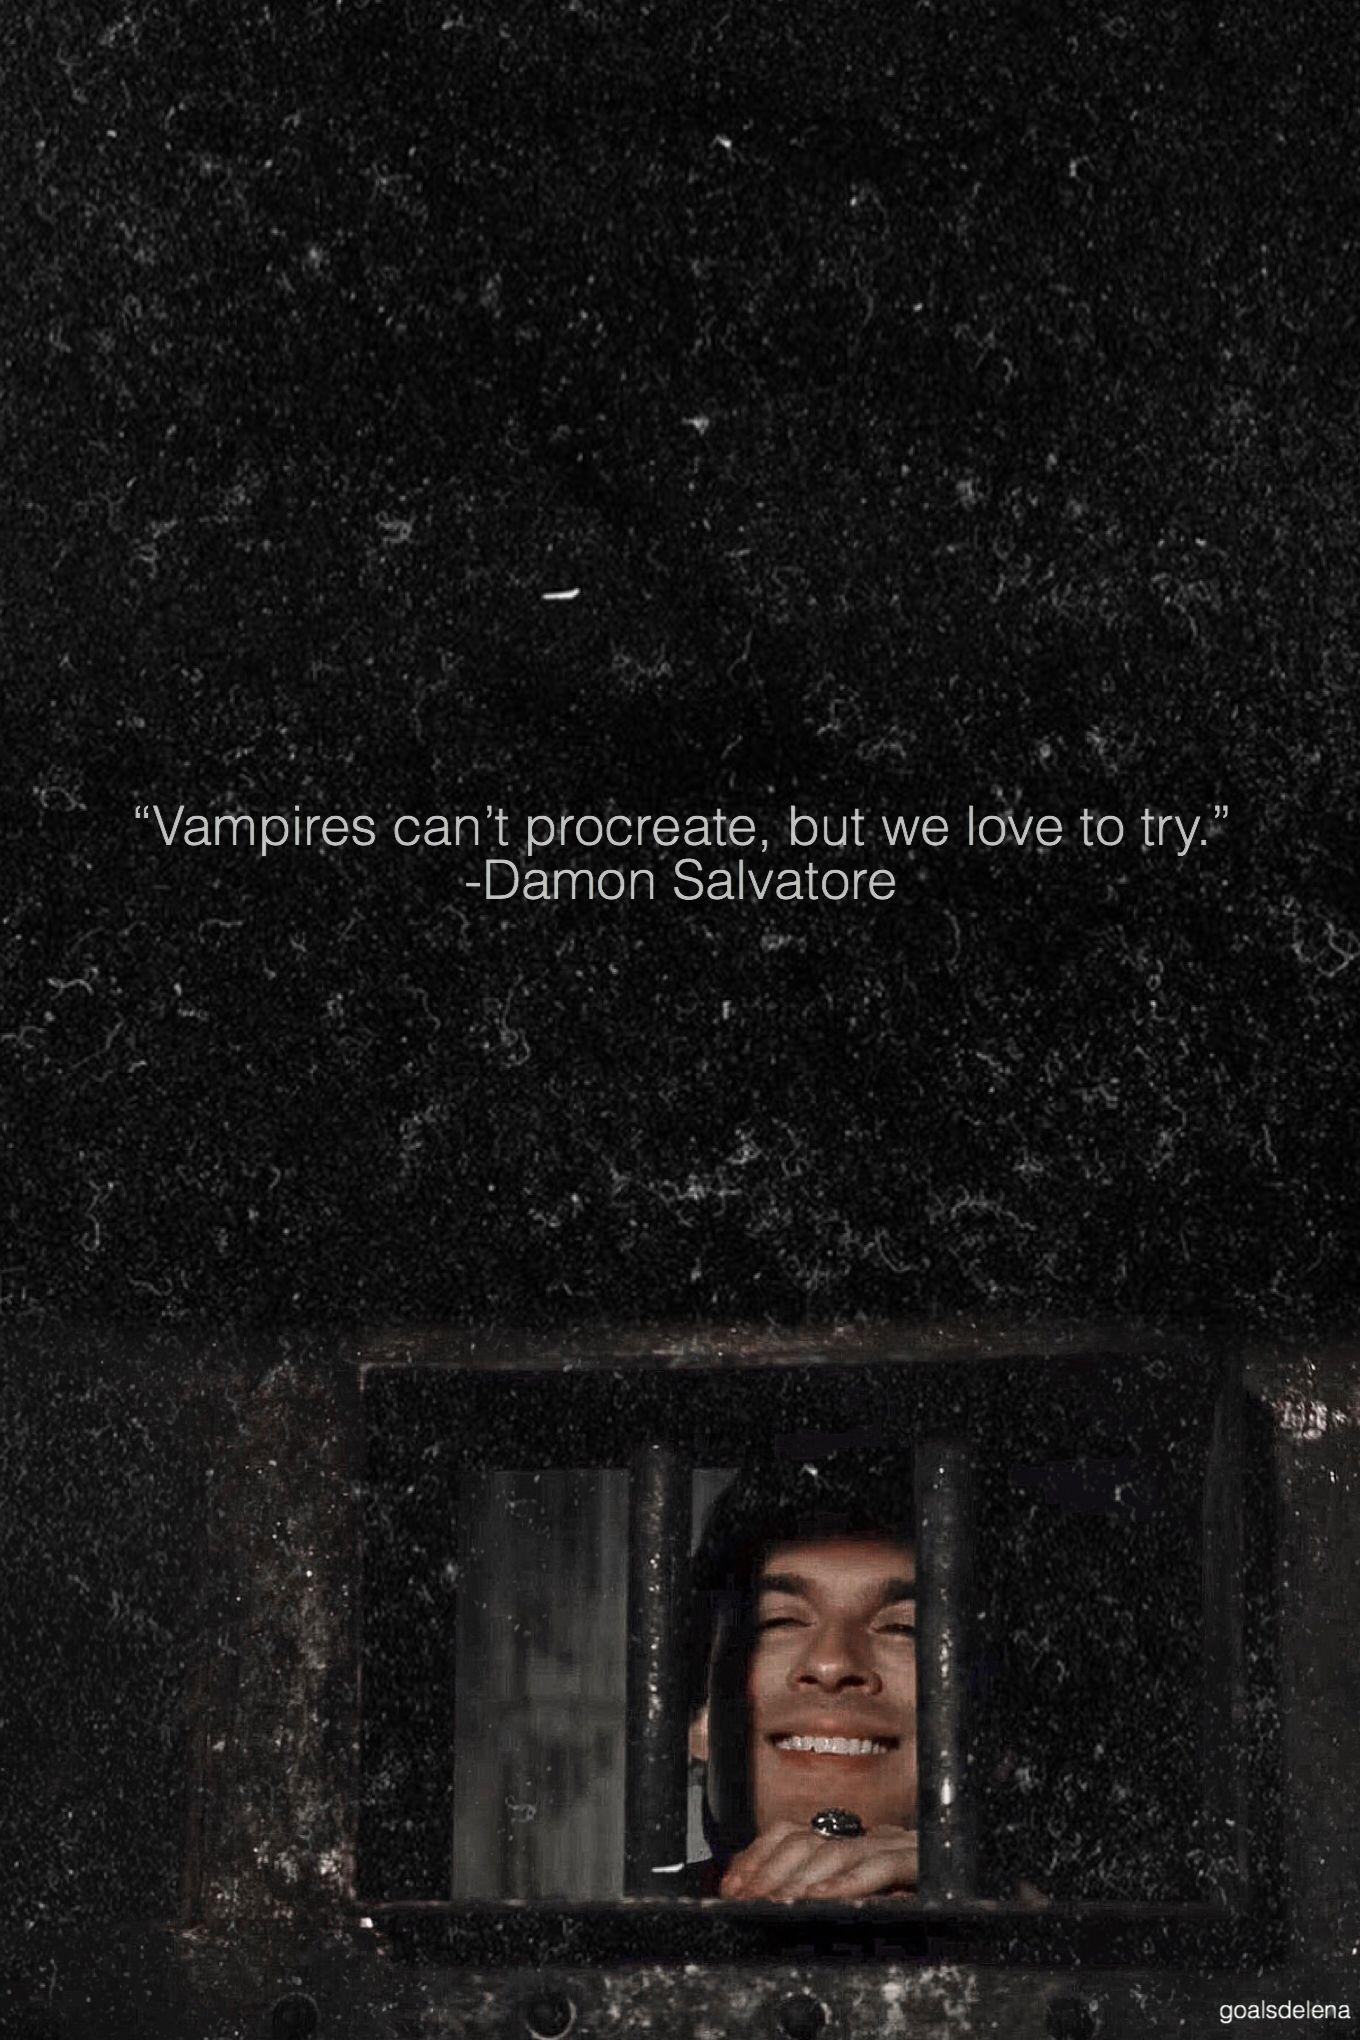 The Vampire Diaries Quotes Wallpapers - Wallpaper Cave